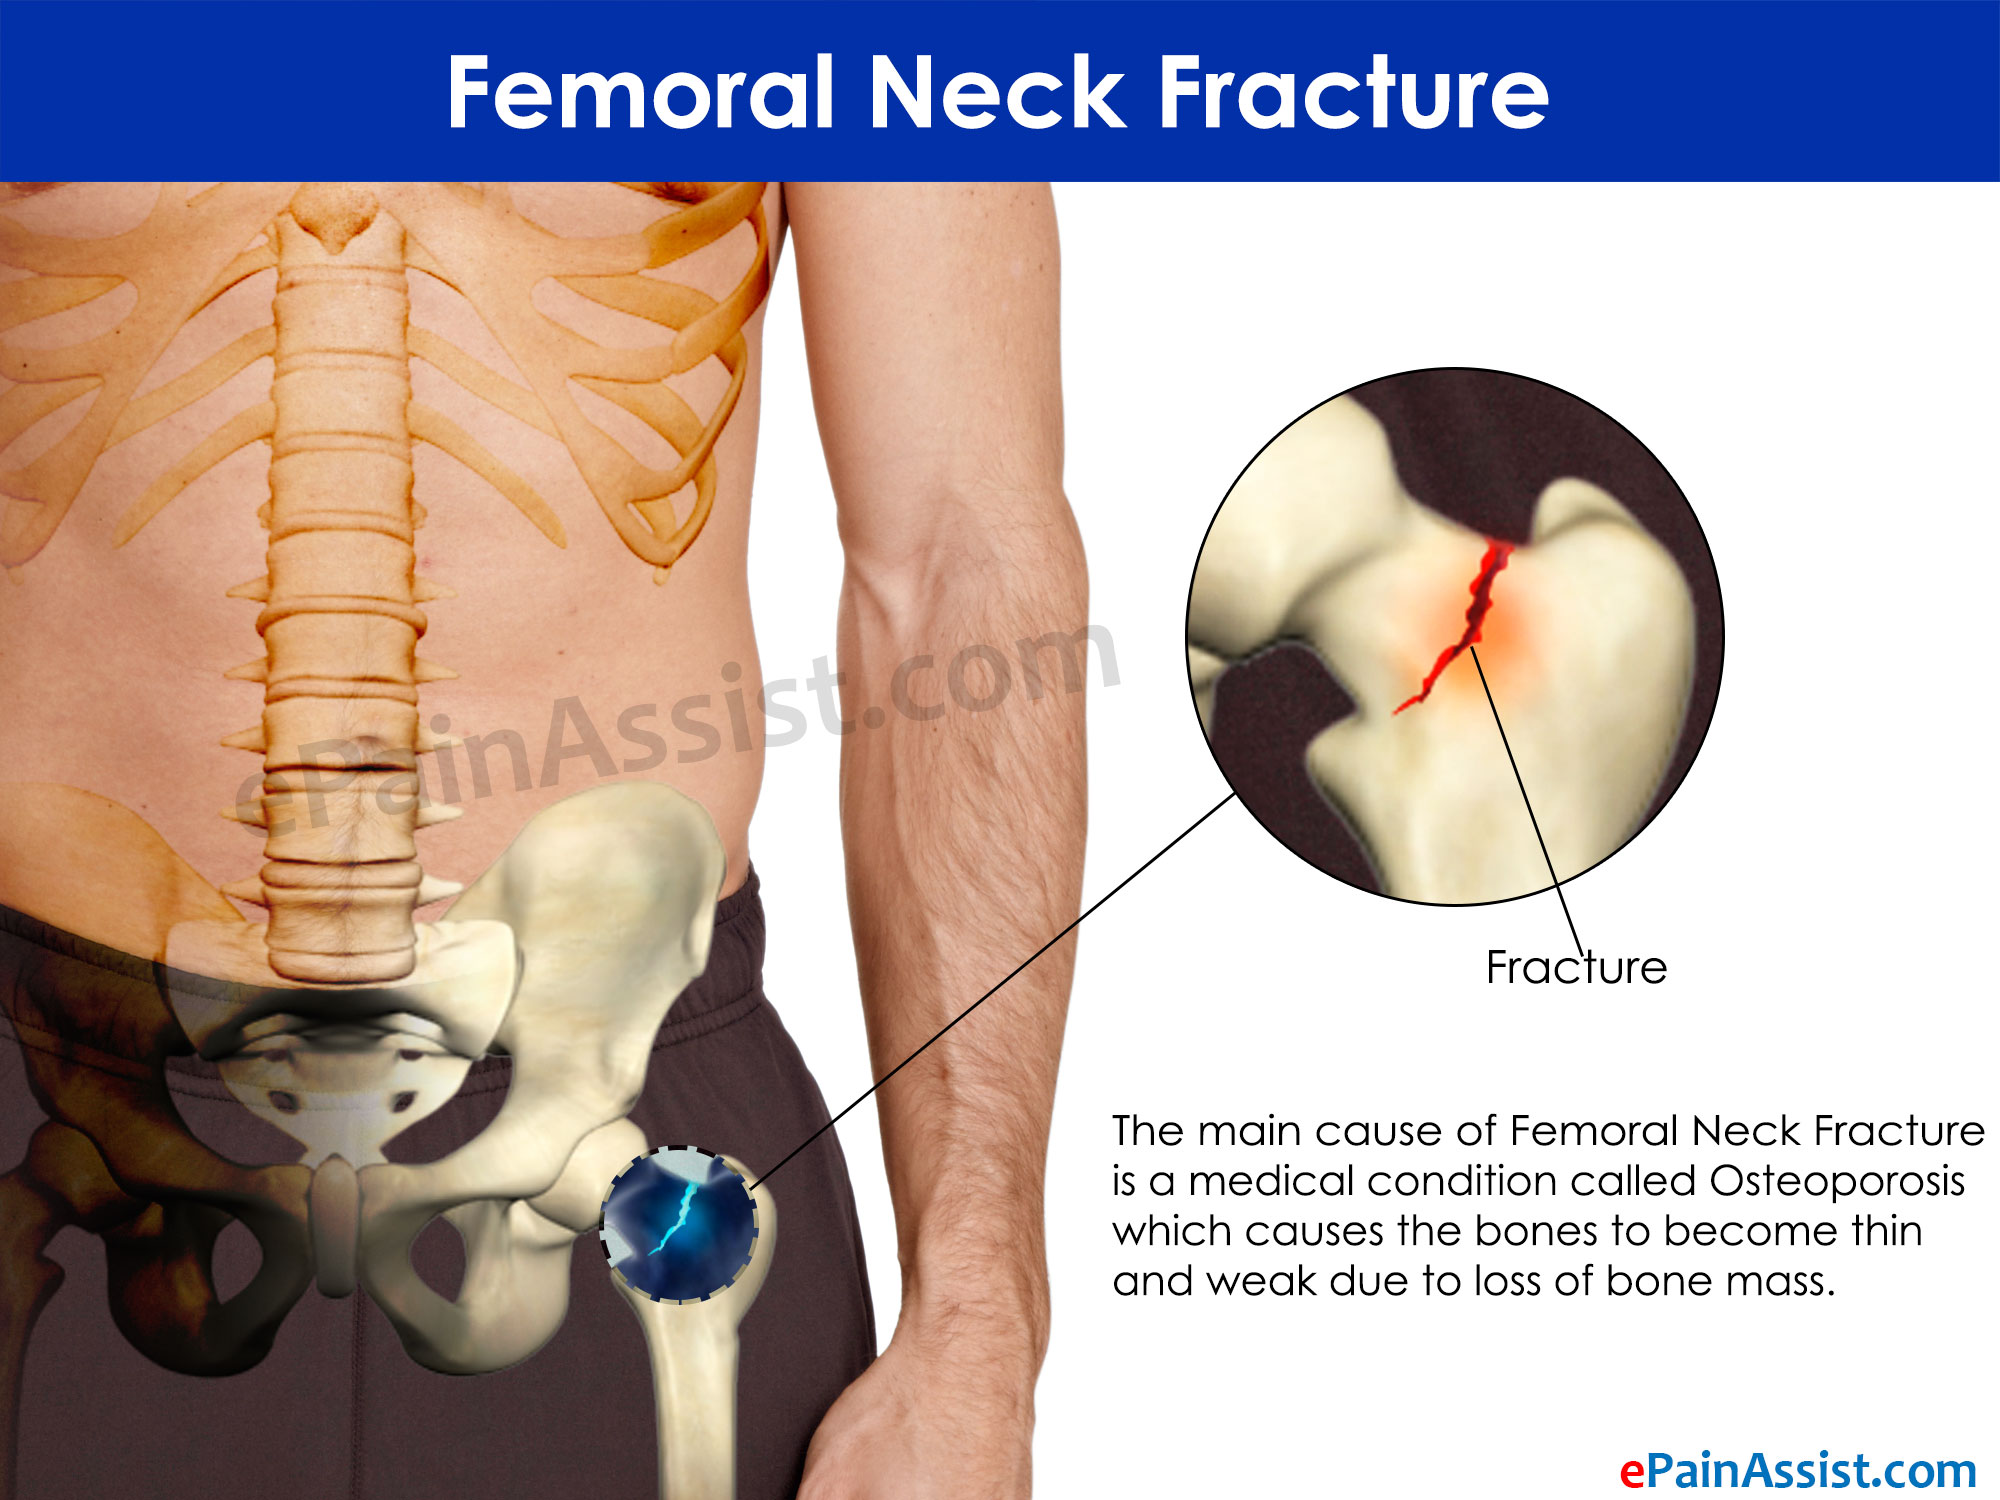 Fracture of the femoral neck in old age is a verdict